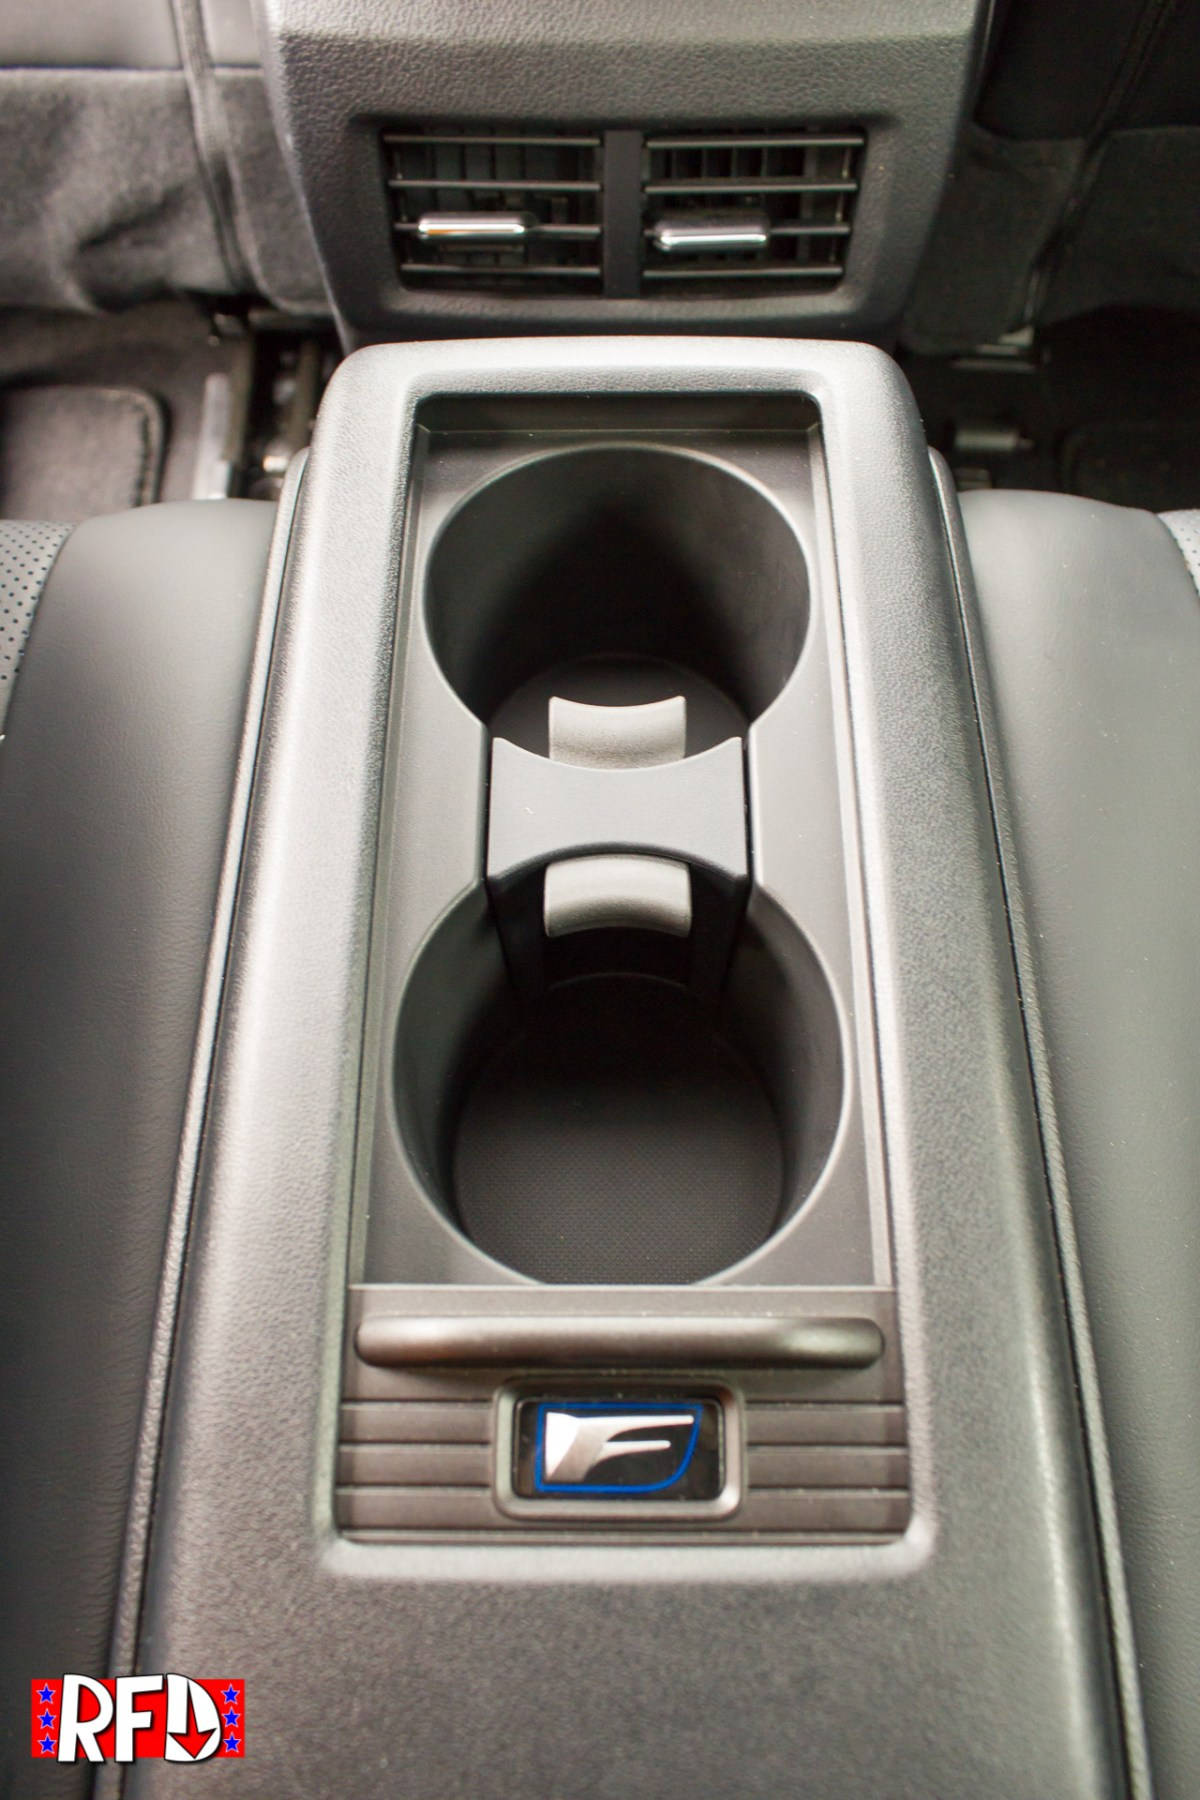 2016 Lexus RC F rear center console with cup holders and F Sport badge.